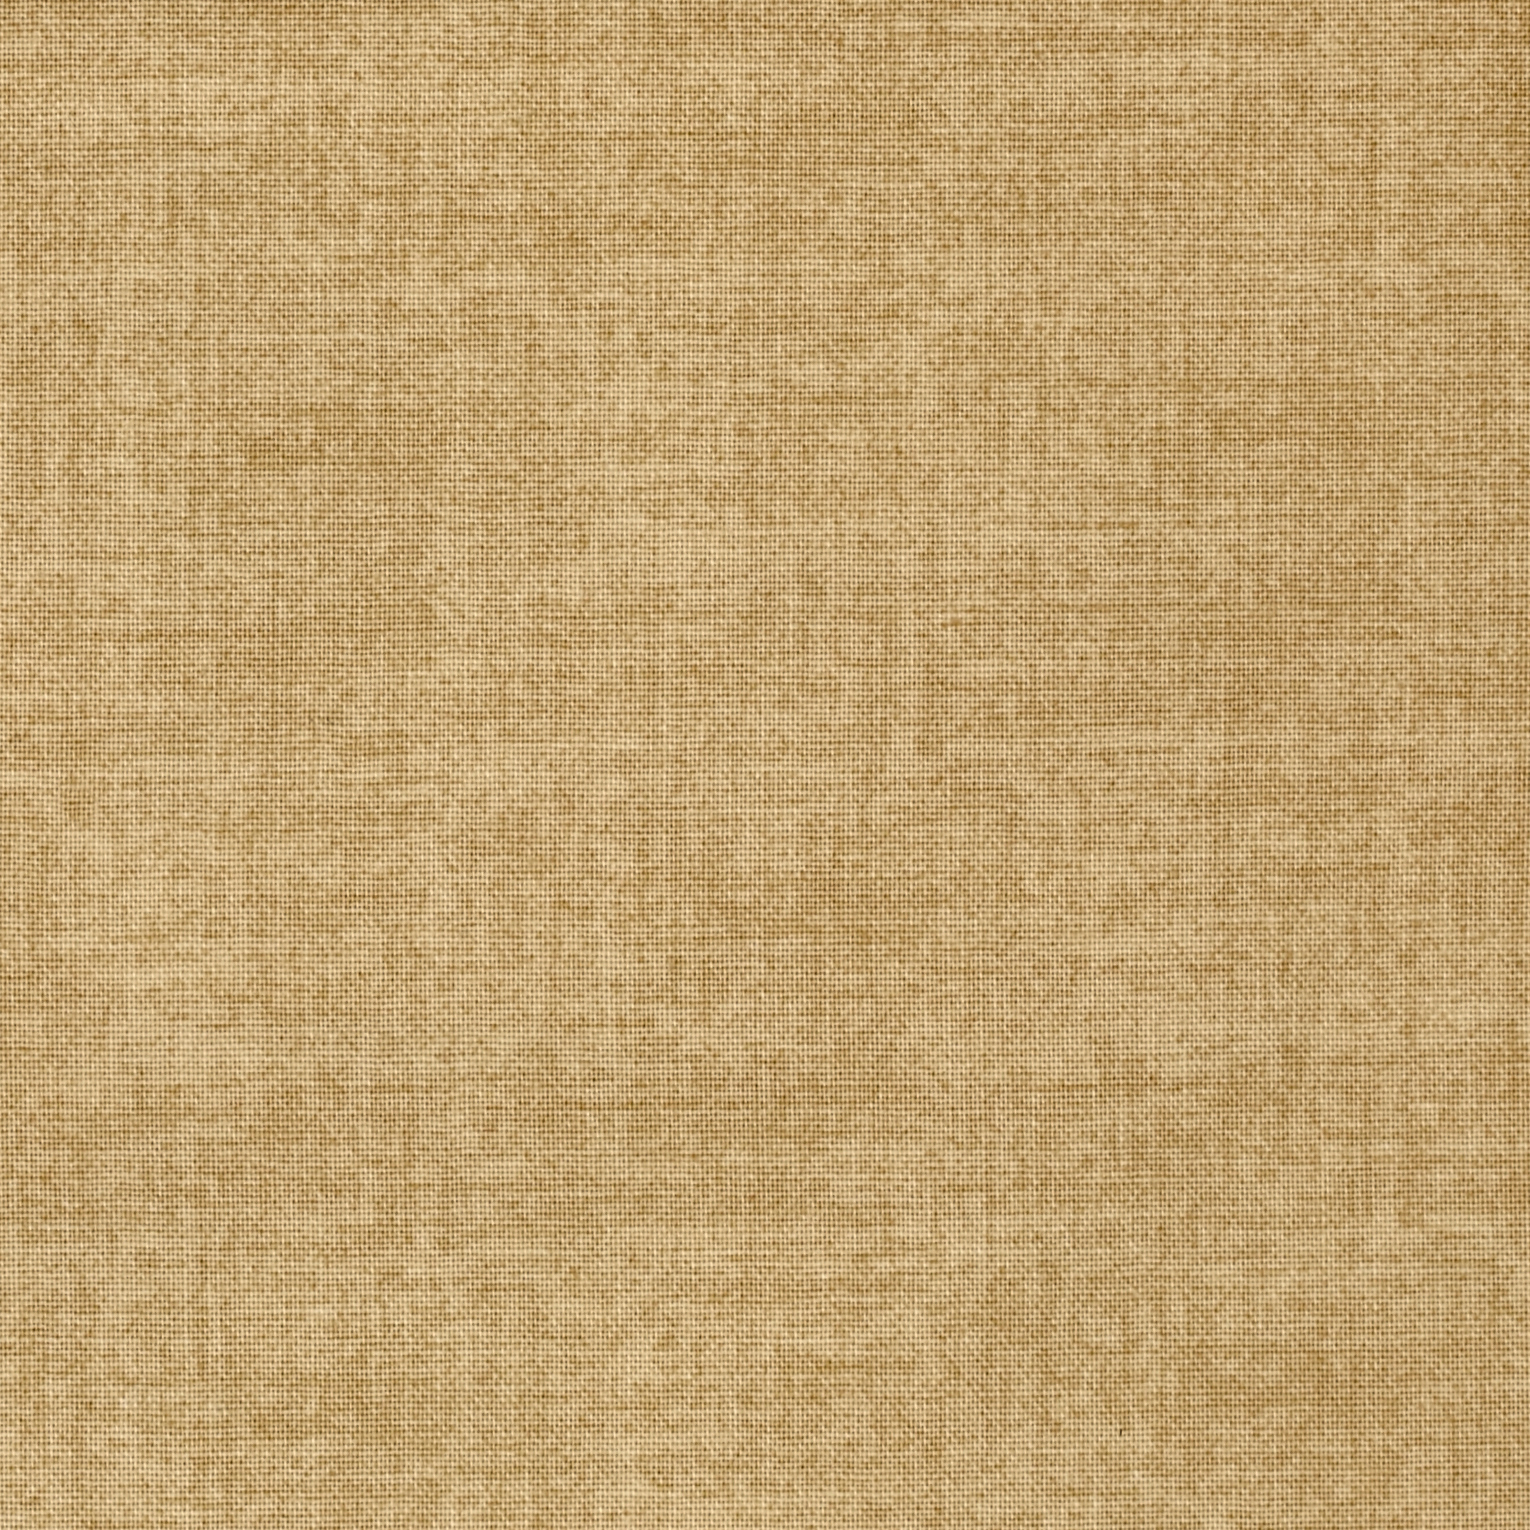 Linen Texture Straw Fabric by Andover & Makower in USA